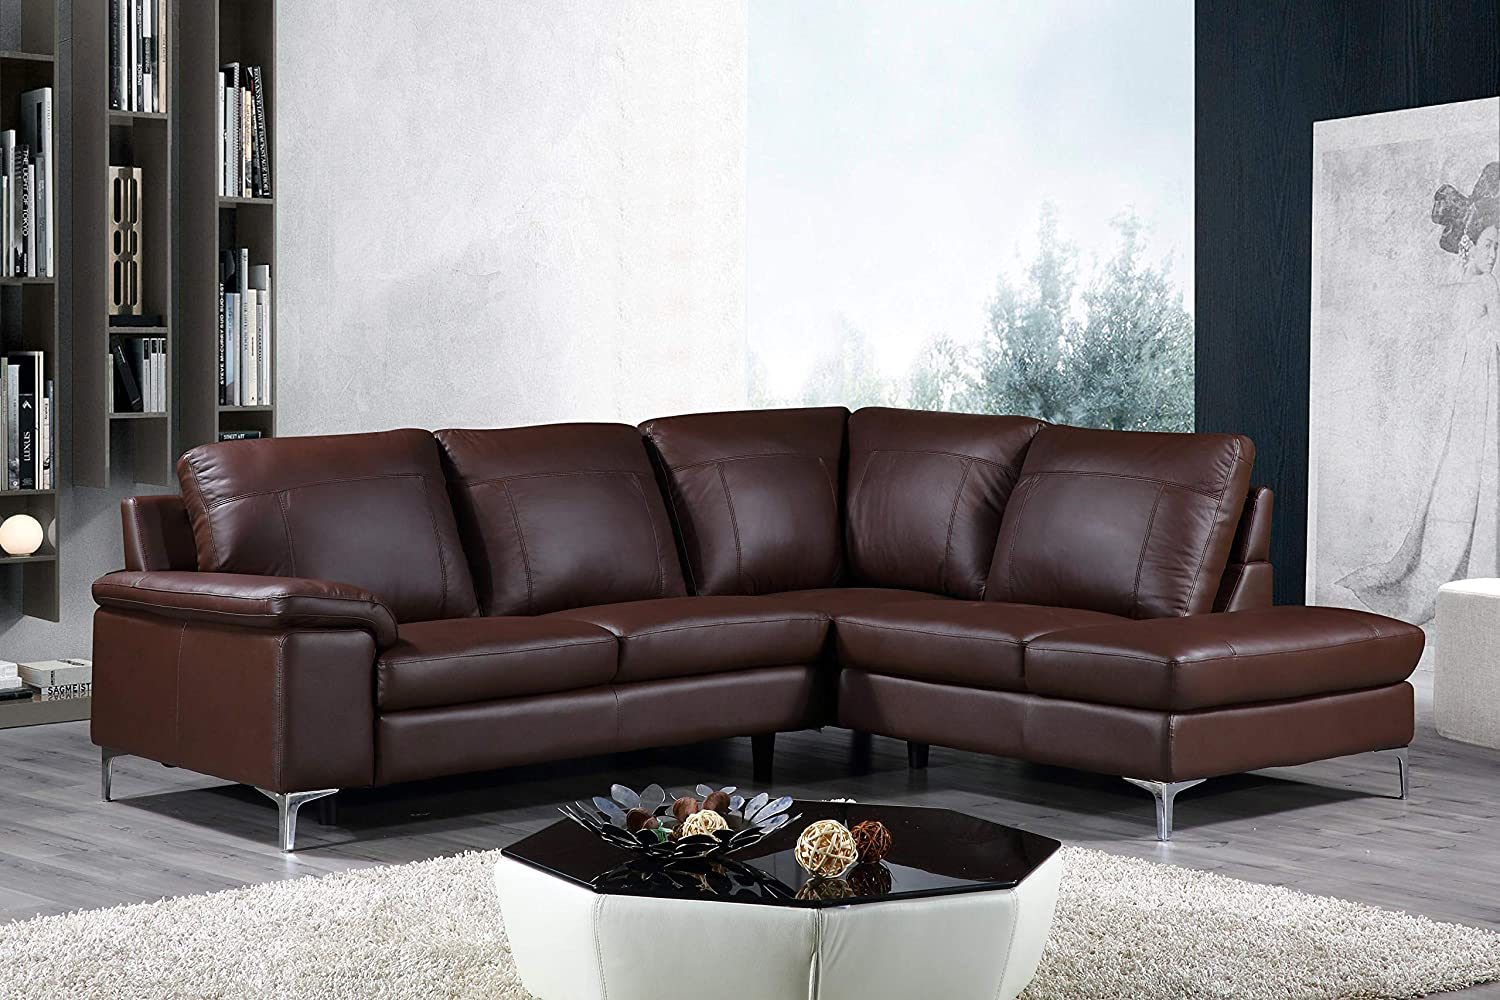 Super Cortesi Home Contemporary Dallas Genuine Leather Sectional Sofa With Right Chaise Lounge Brown Uwap Interior Chair Design Uwaporg